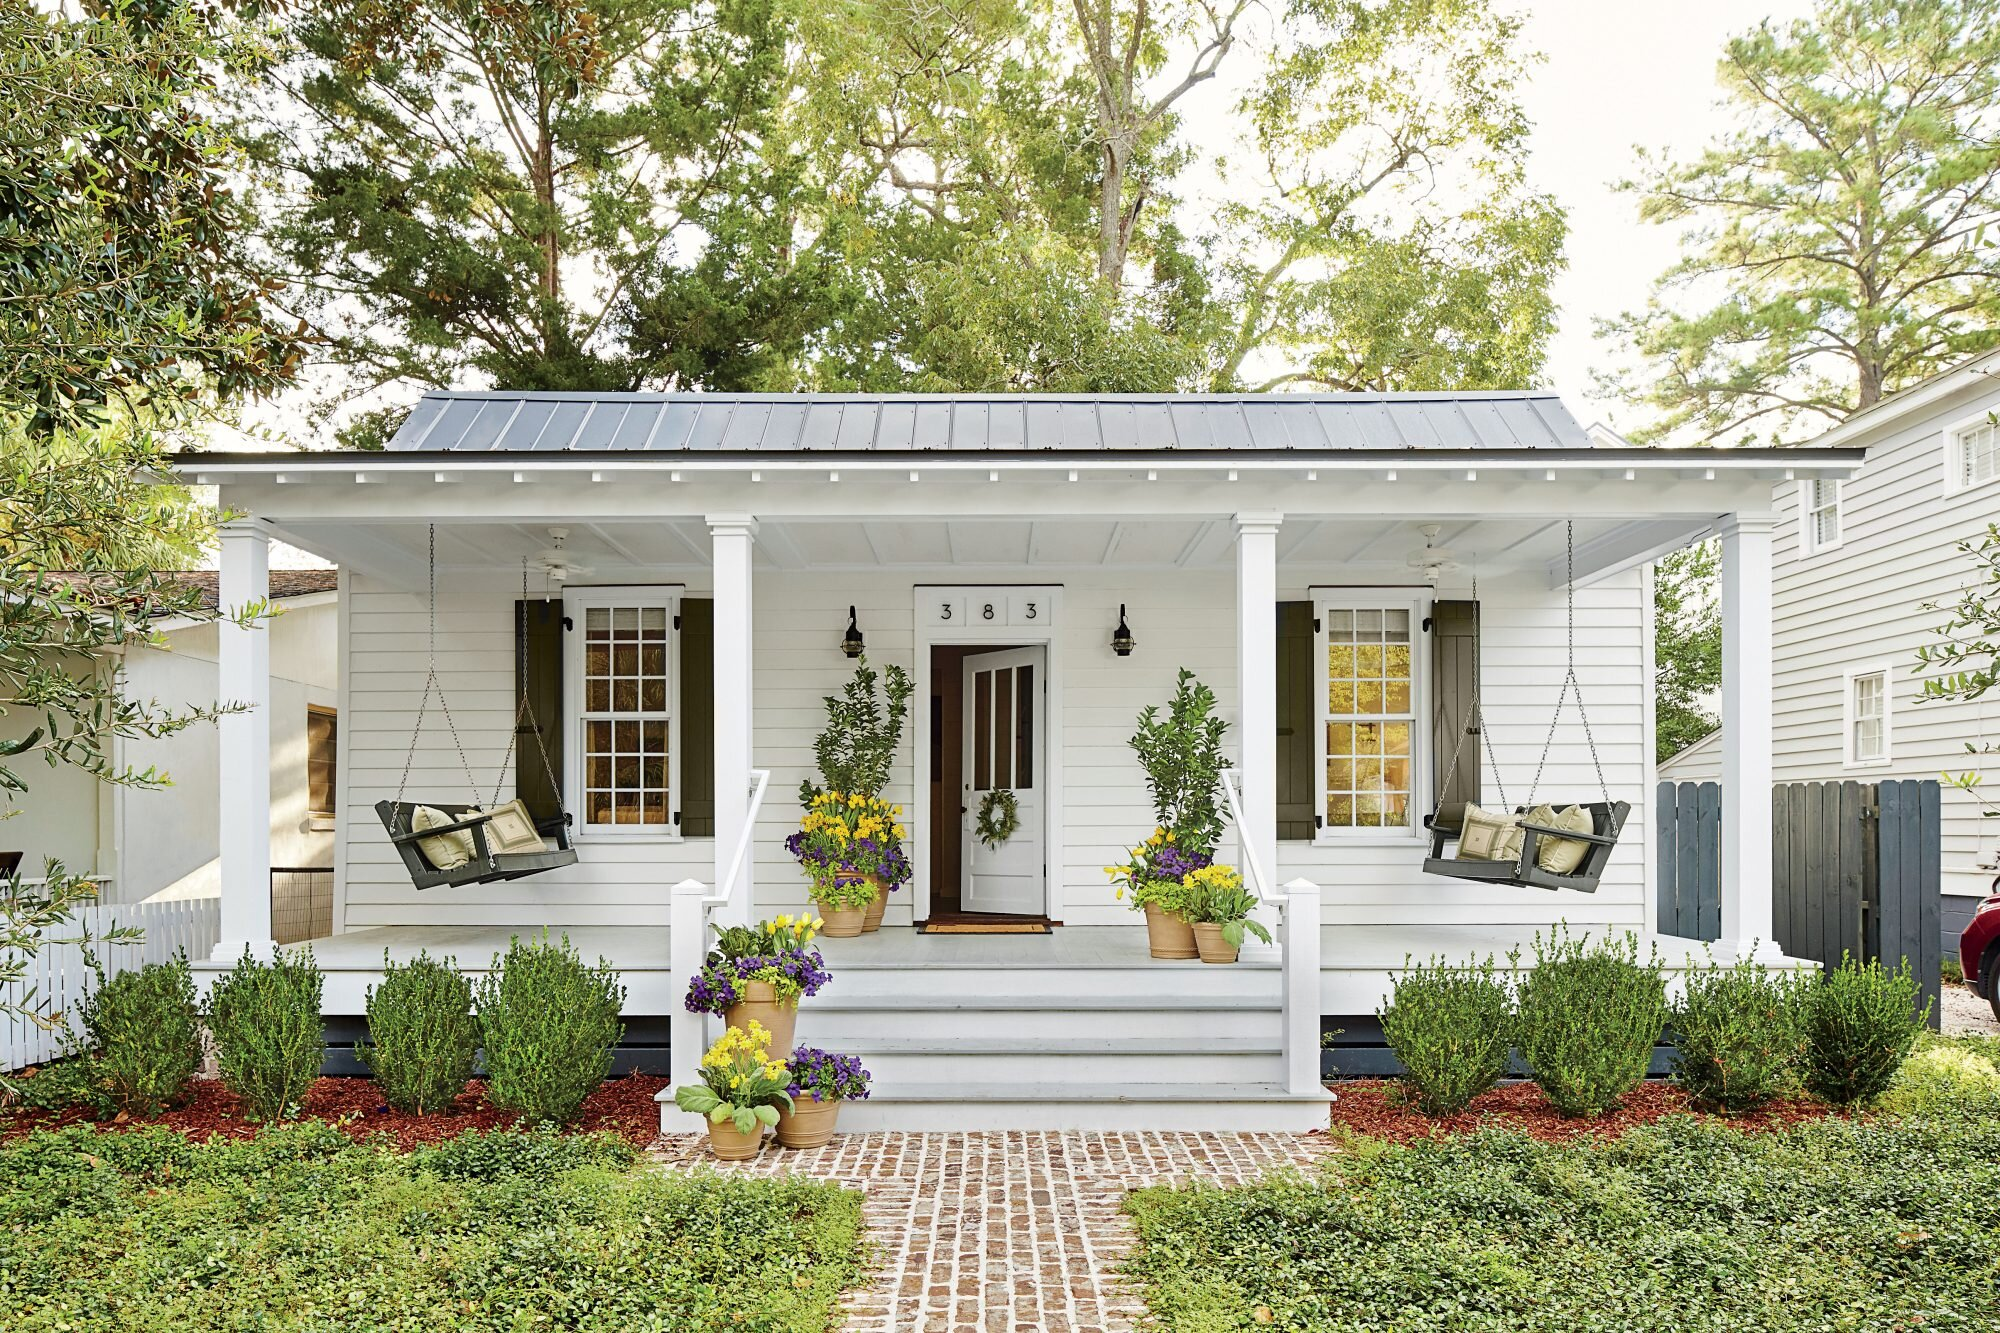 Secrets to Styling an Inviting Front Porch